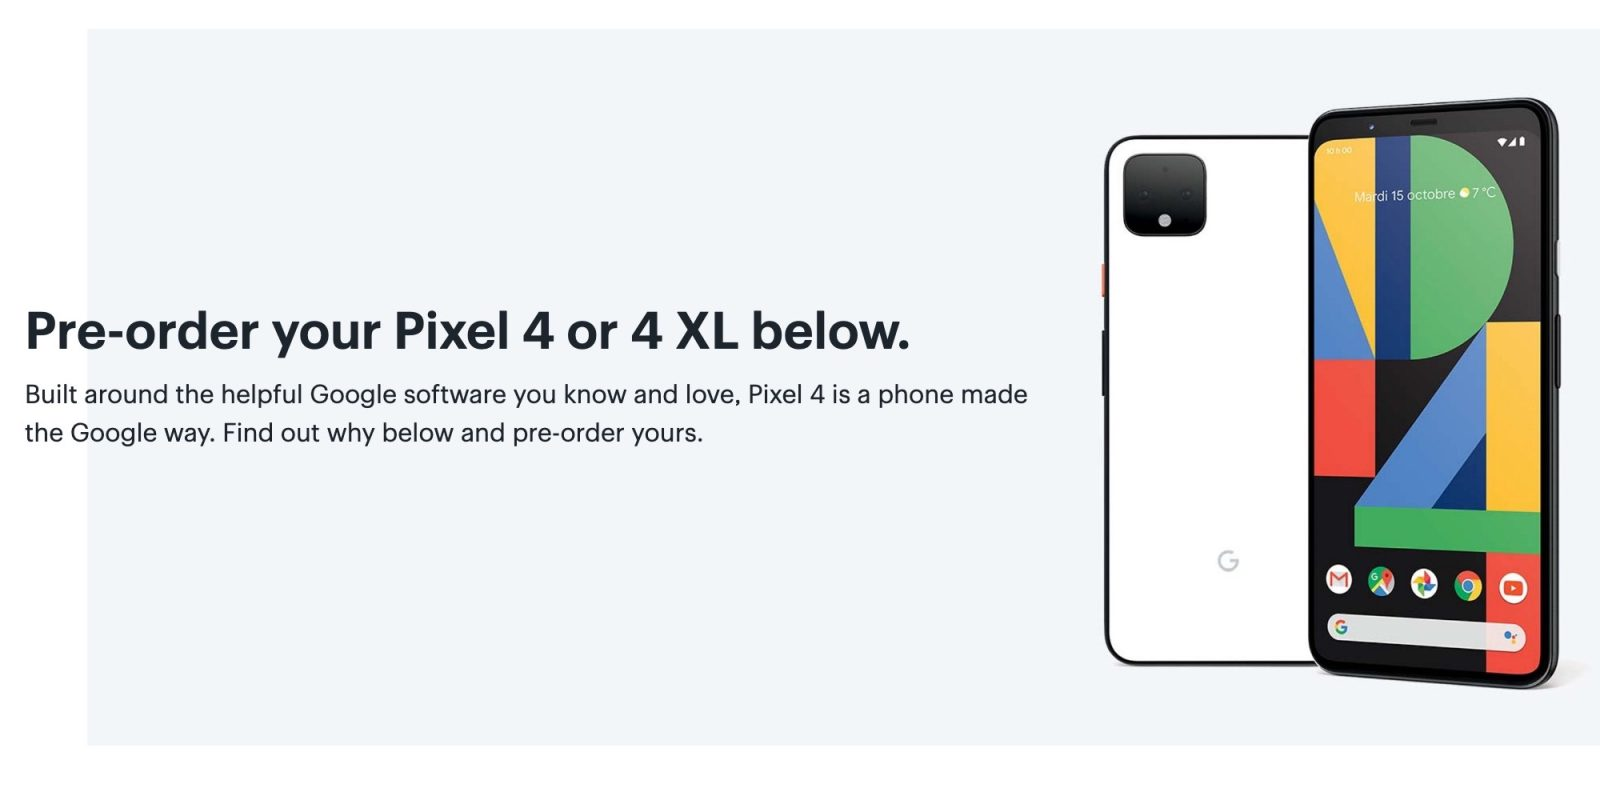 Pixel 4 fully detailed by Best Buy Canada with specs, comparison, and pre-order - 9to5Google 1